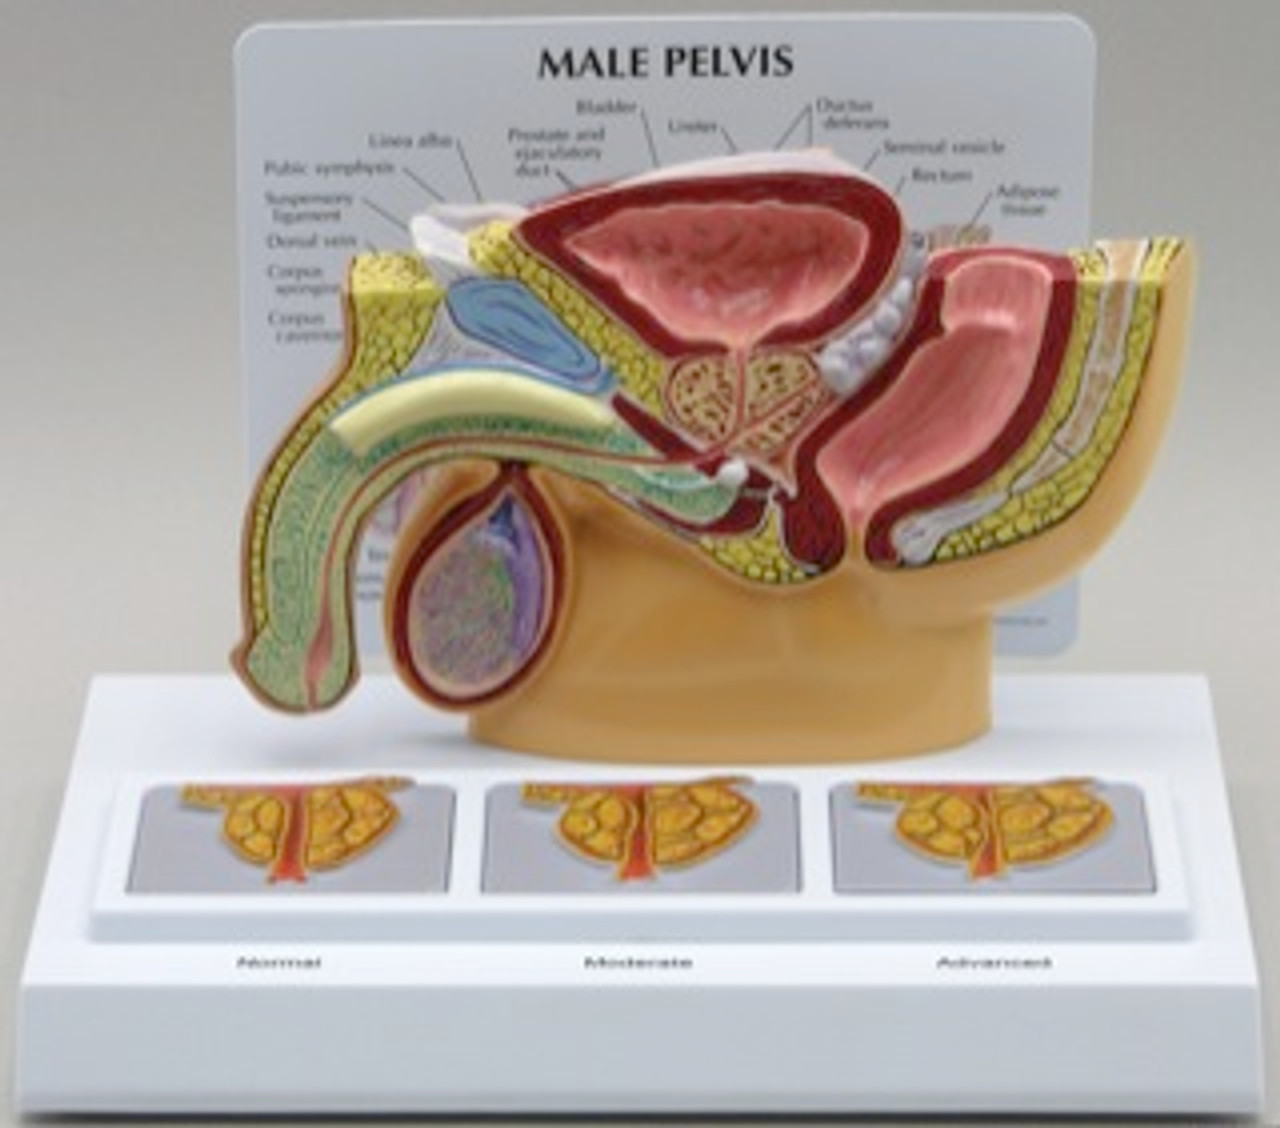 Male Pelvis and Prostate Anatomical Model